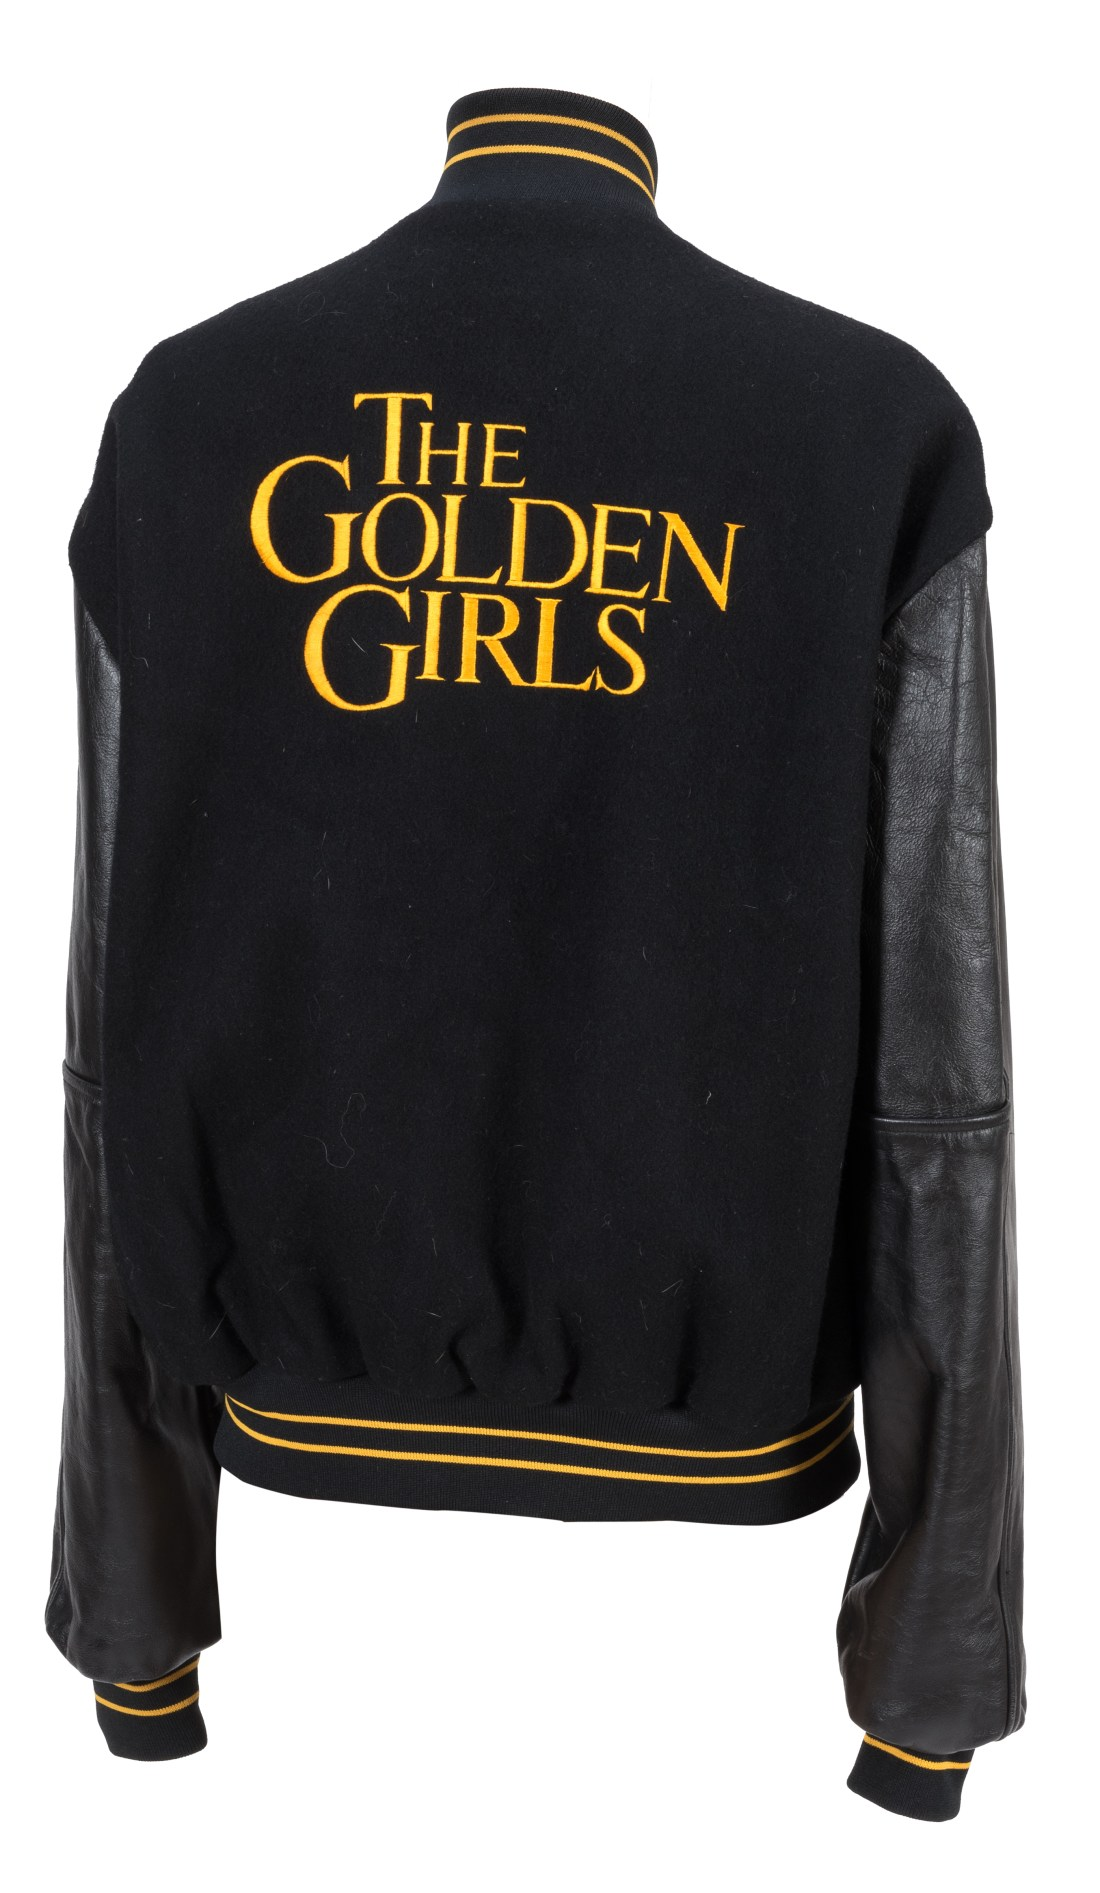 A circa 1980s wool, leather, and nylon Golden Girls letterman jacket, size L, personalized for Rue McClanahan. It's one of four; the other three went to her co-stars on the beloved sitcom. It comes with a Certificate of Authenticity (COA) from McClanahan's estate.